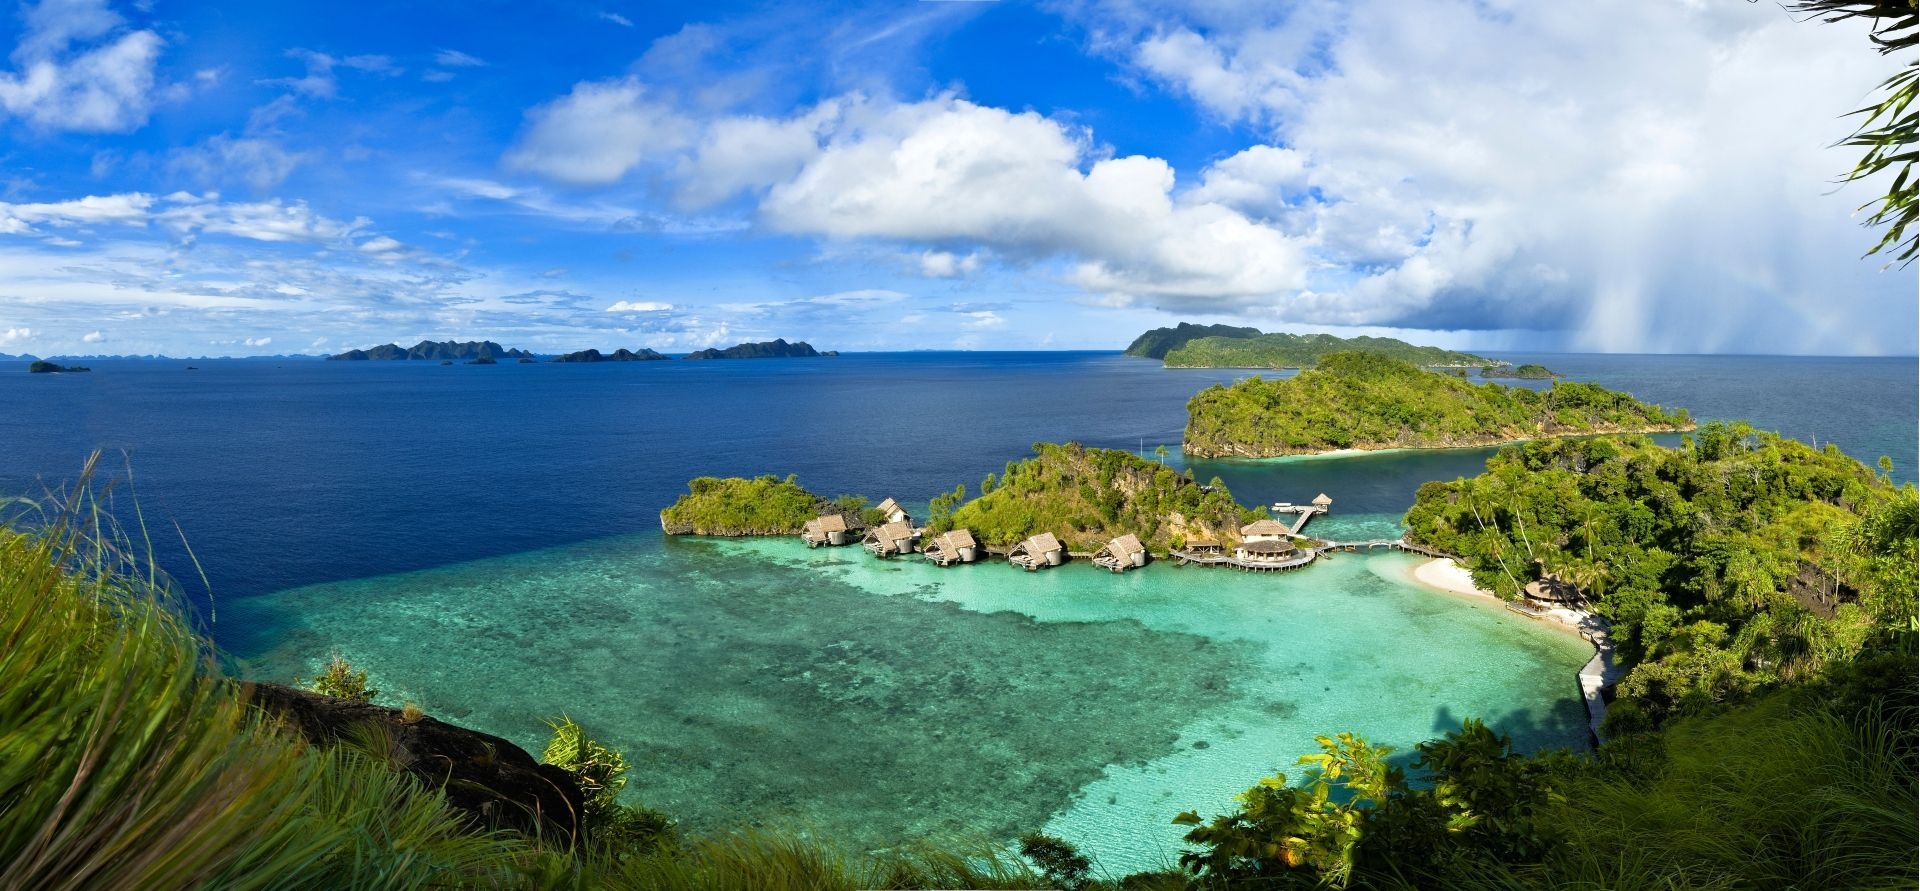 Misool set amongst wonderful Islands of Raja Ampat (Photo Credit Tobias Zimmer)